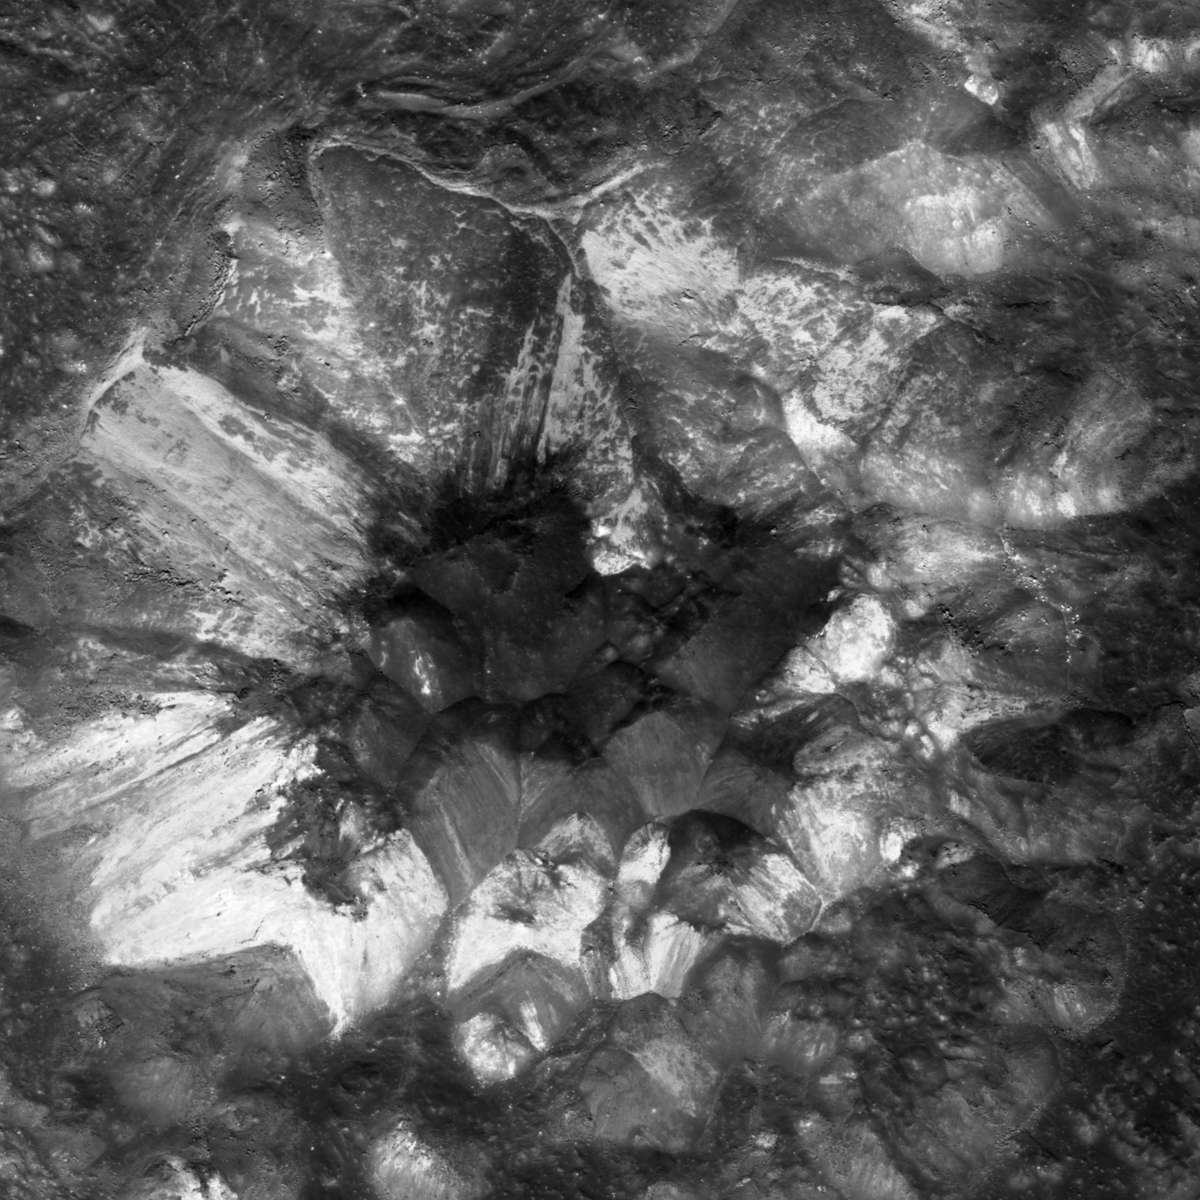 The very center of Jackson crater on the Moon is a jumbled mess of light and dark material. Credit: NASA/GSFC/Arizona State University